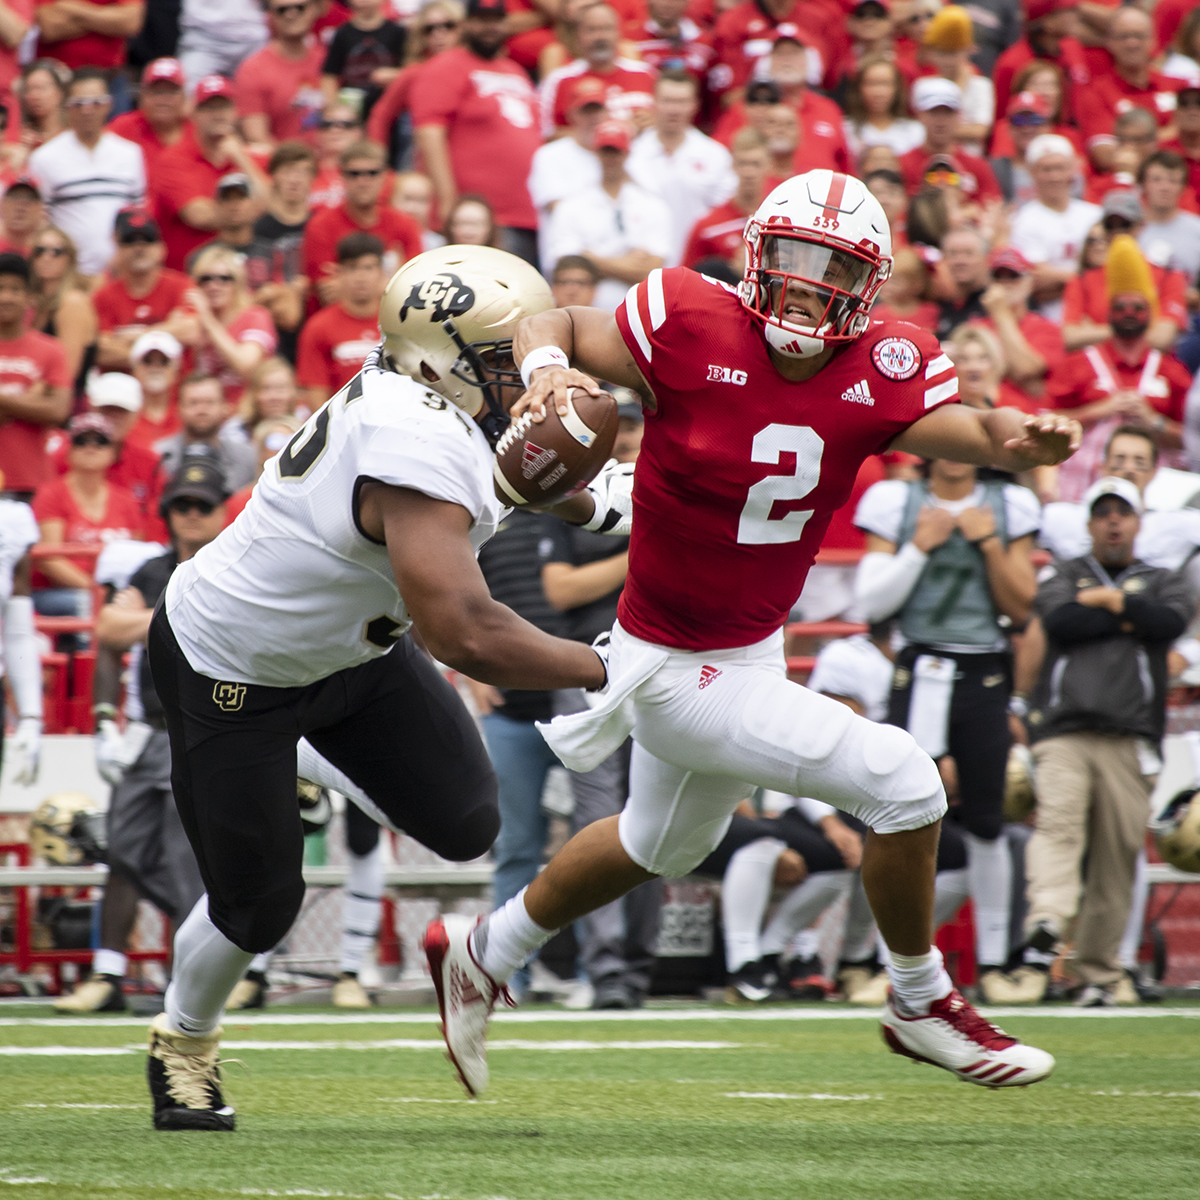 Husker QB Adrian Martinez Goes Down in Debut